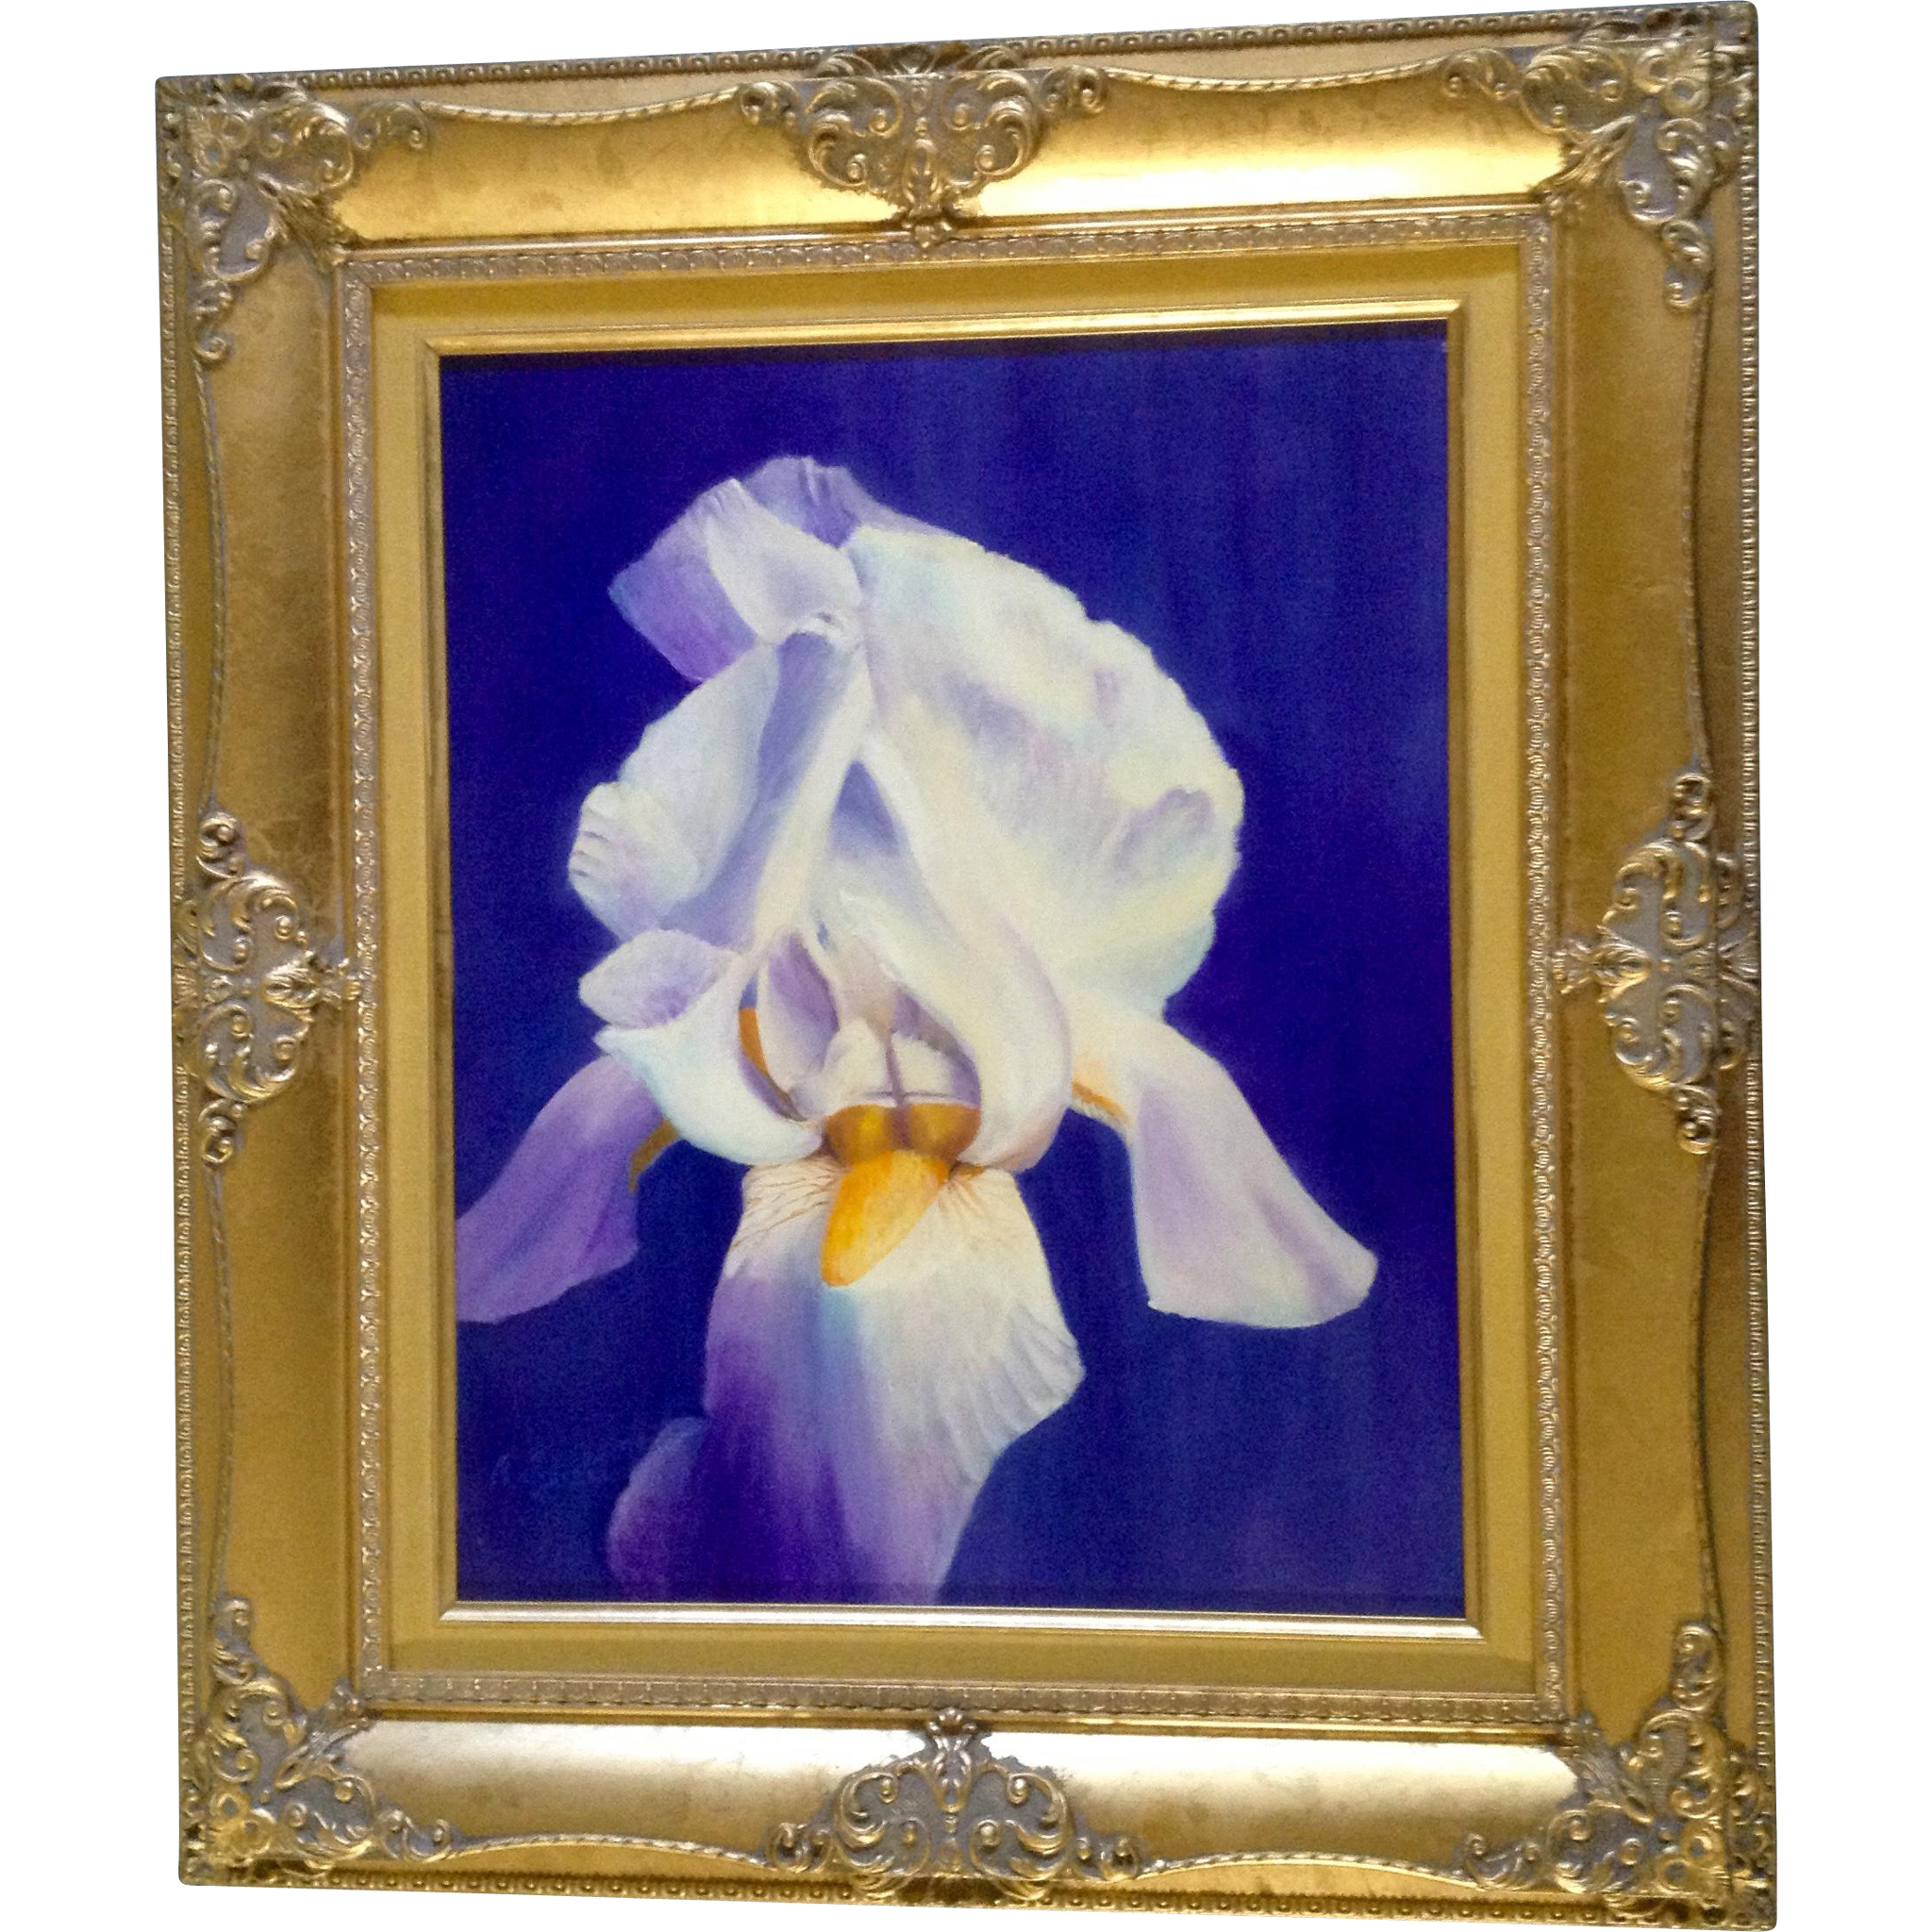 John Arguello Violet and White Iris Flower Original Oil painting on from gu